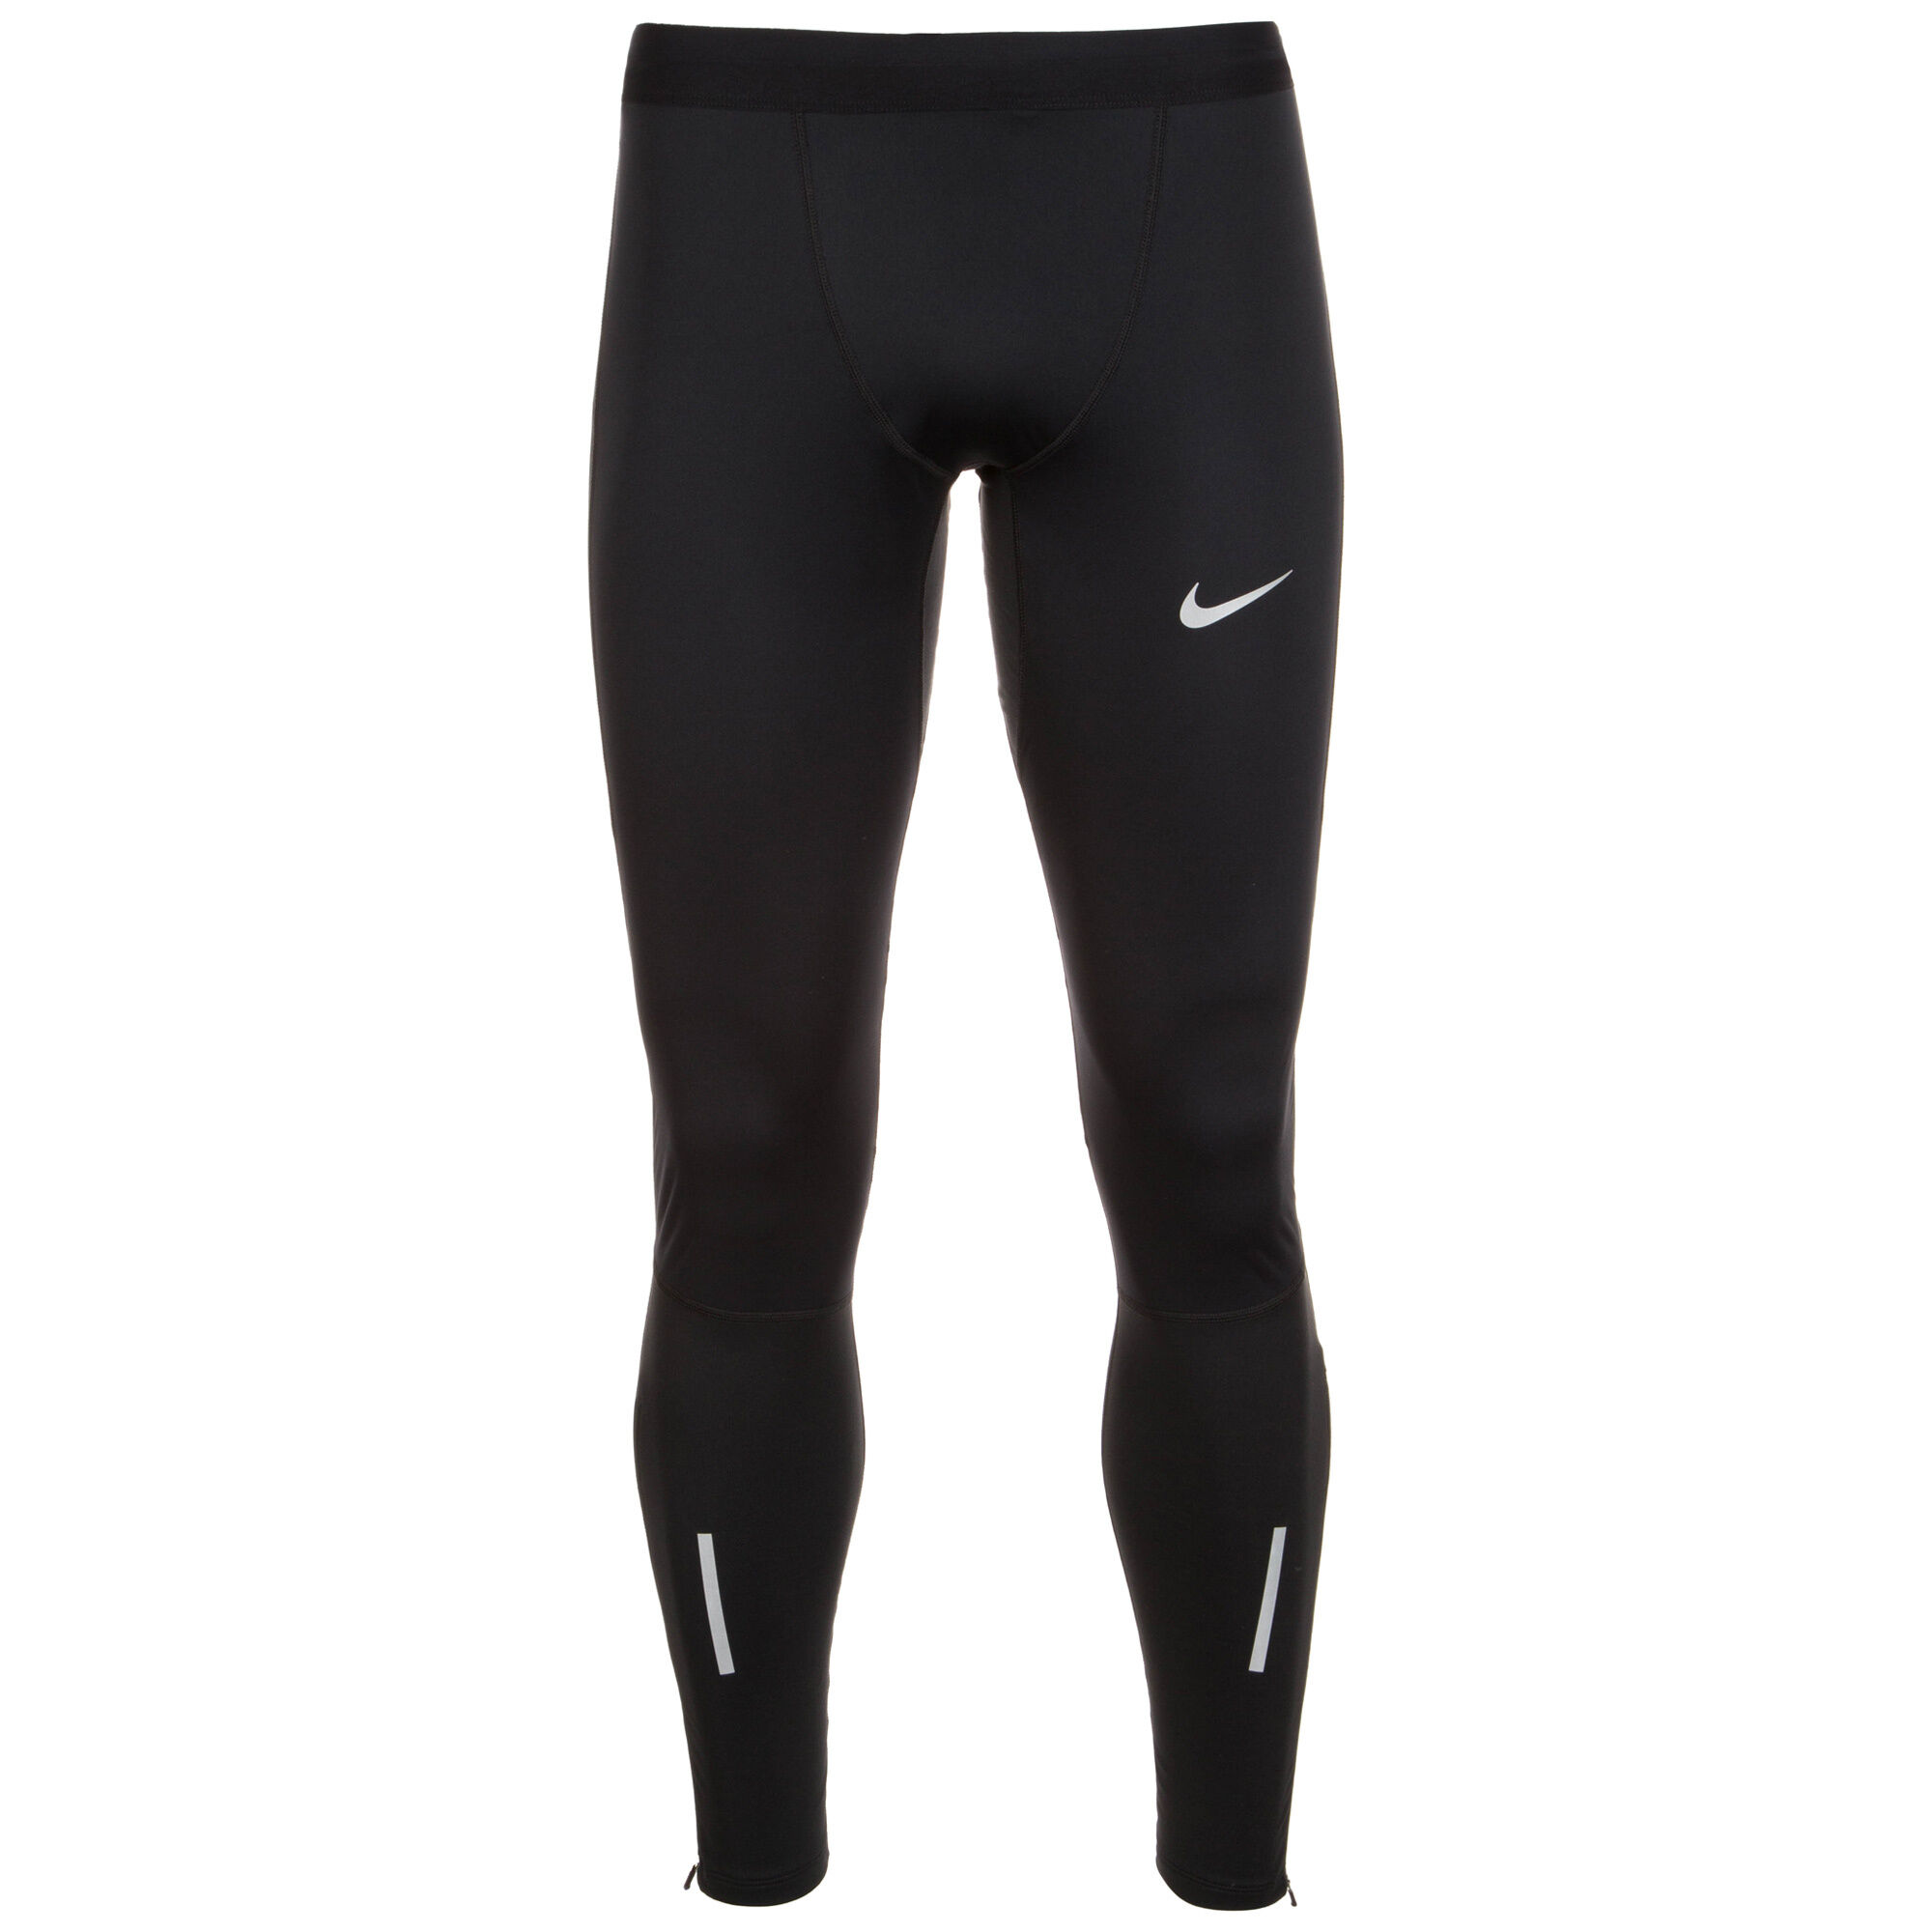 ... Shield Tech Lauftight Herren, Schwarz, zoom bei OUTFITTER Online ...